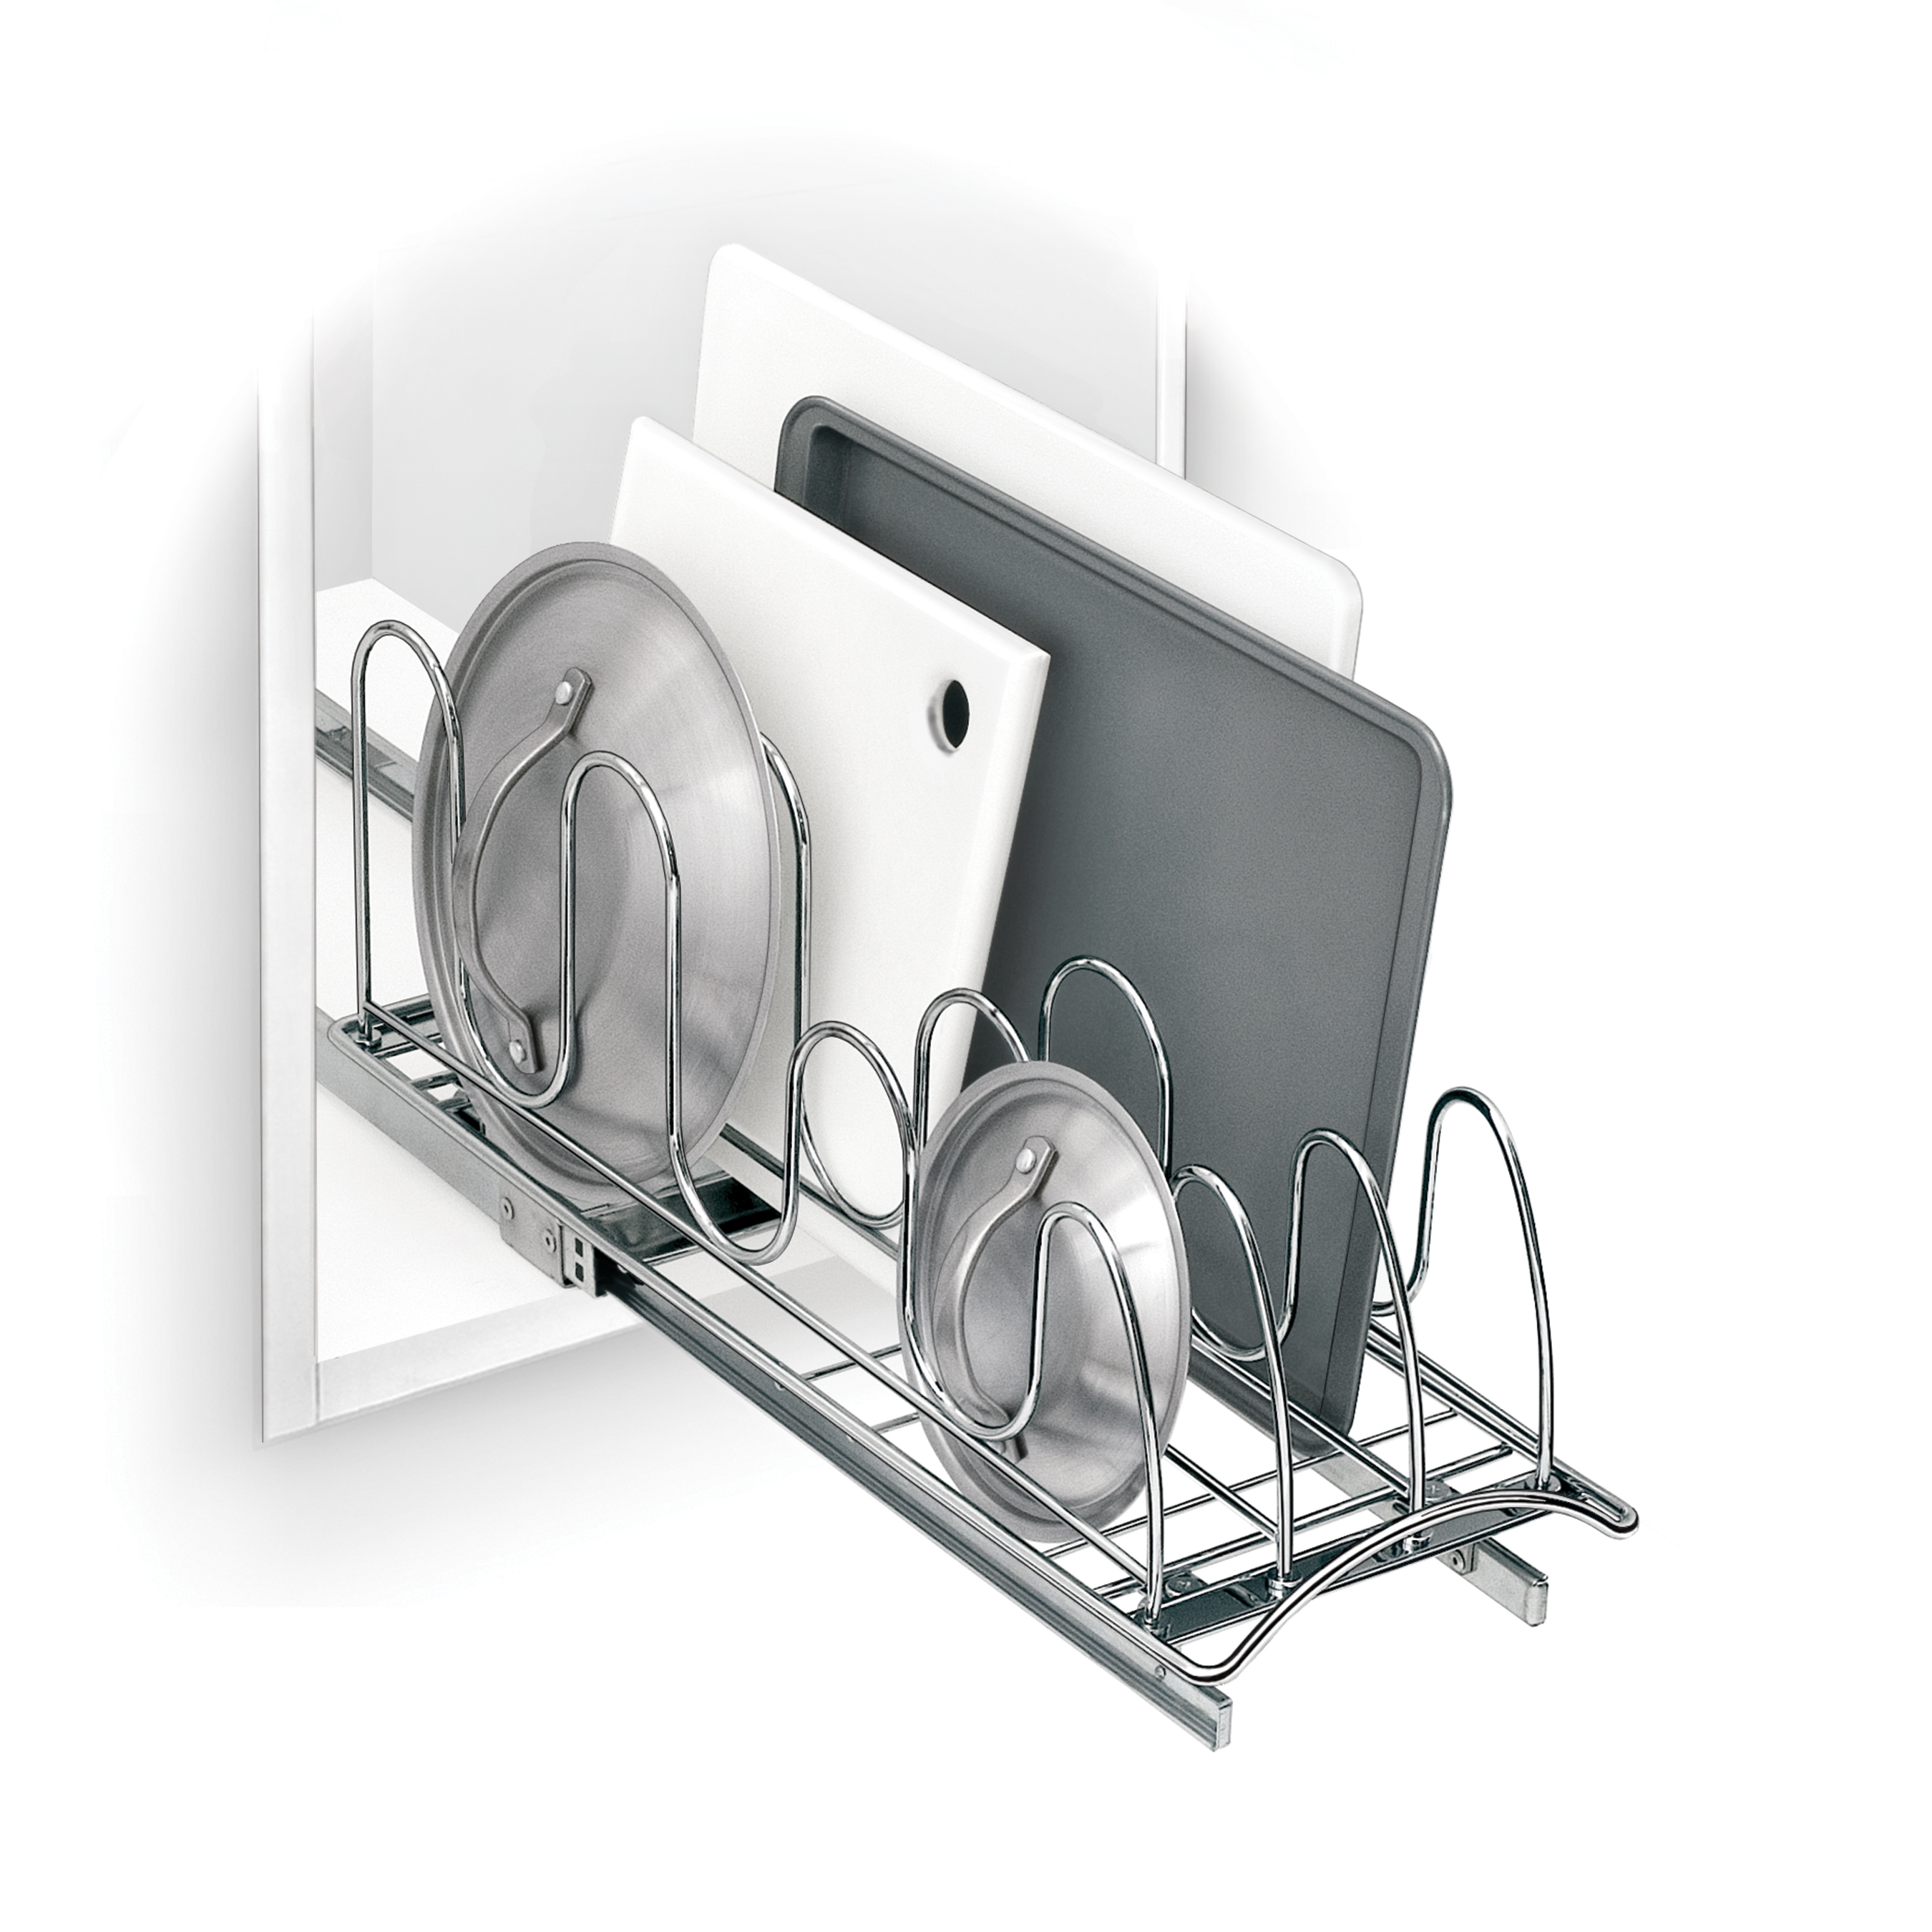 Lynk Roll Out Double Shelf: Kitchen Storage Solutions Tackle Any Problem Area